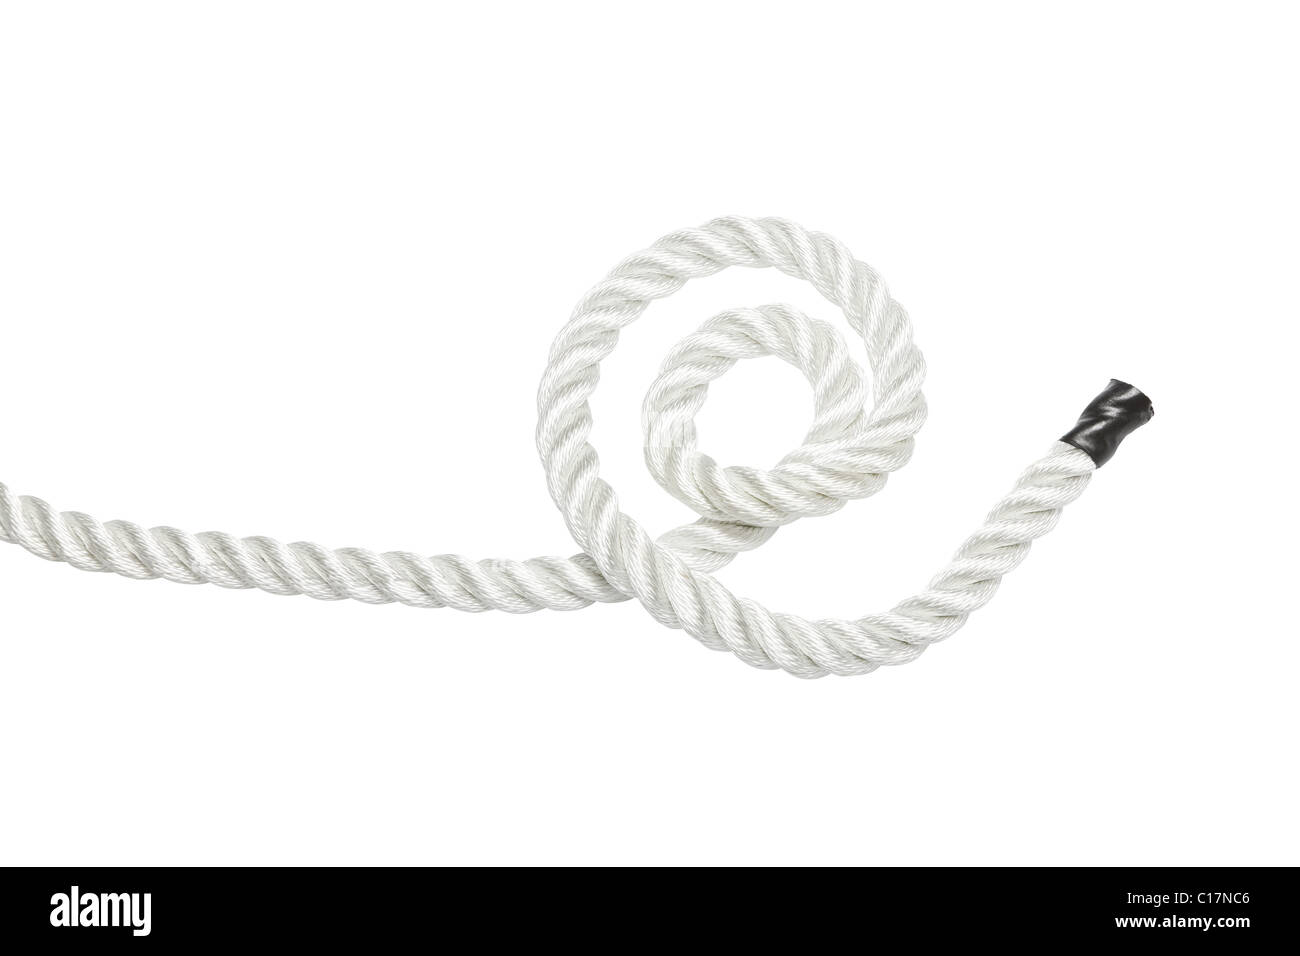 Strong rope isolated on white - Stock Image